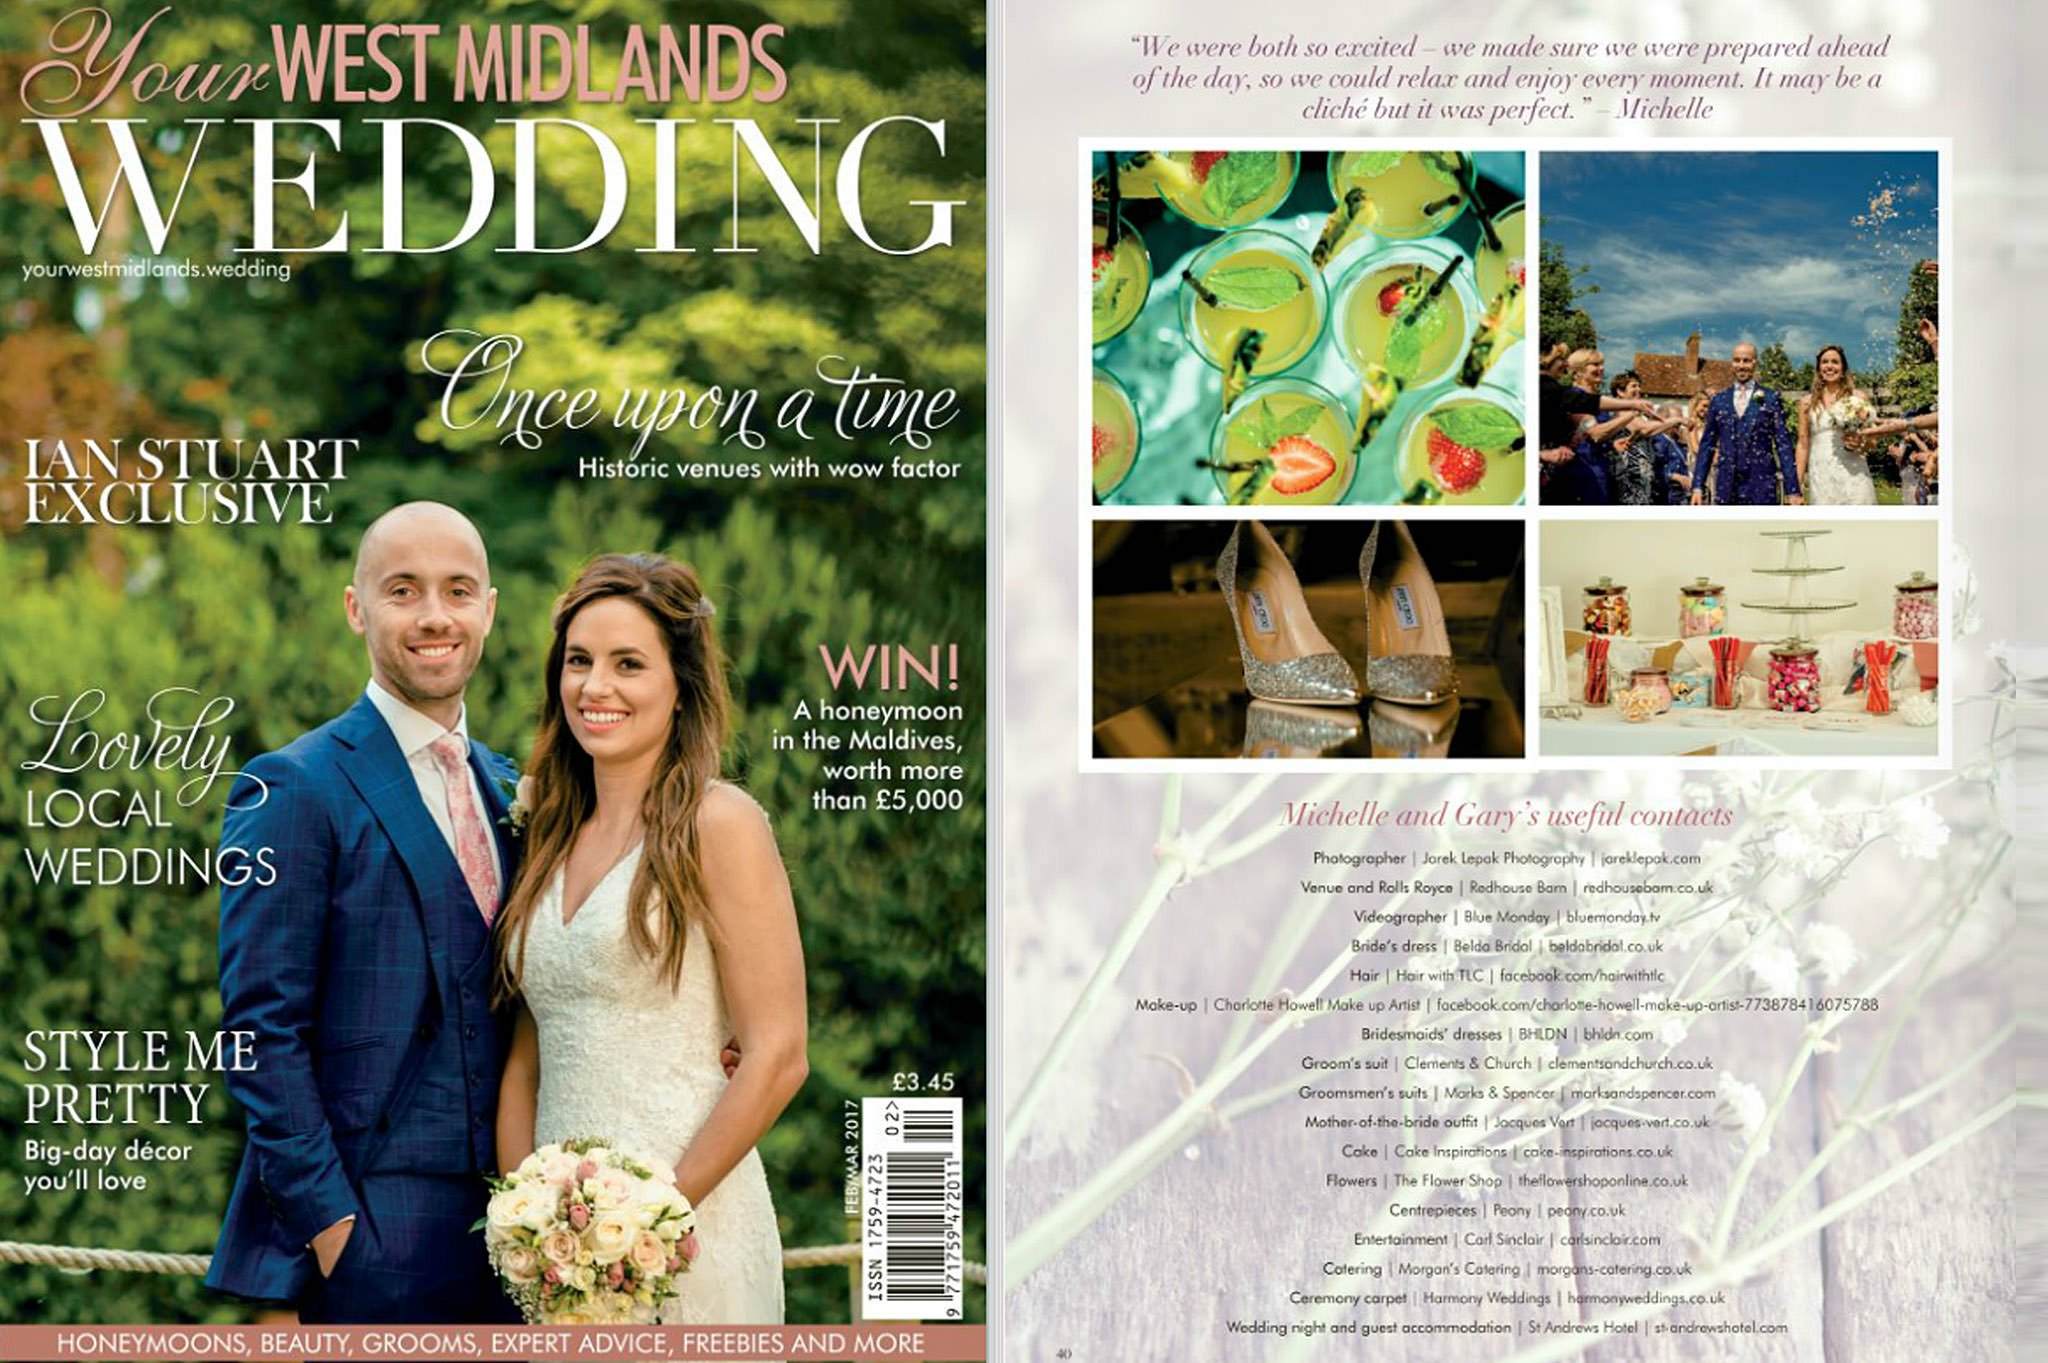 your west midlands wedding 1 - Gary & Michelle's special day featured in Your West Midlands wedding magazine